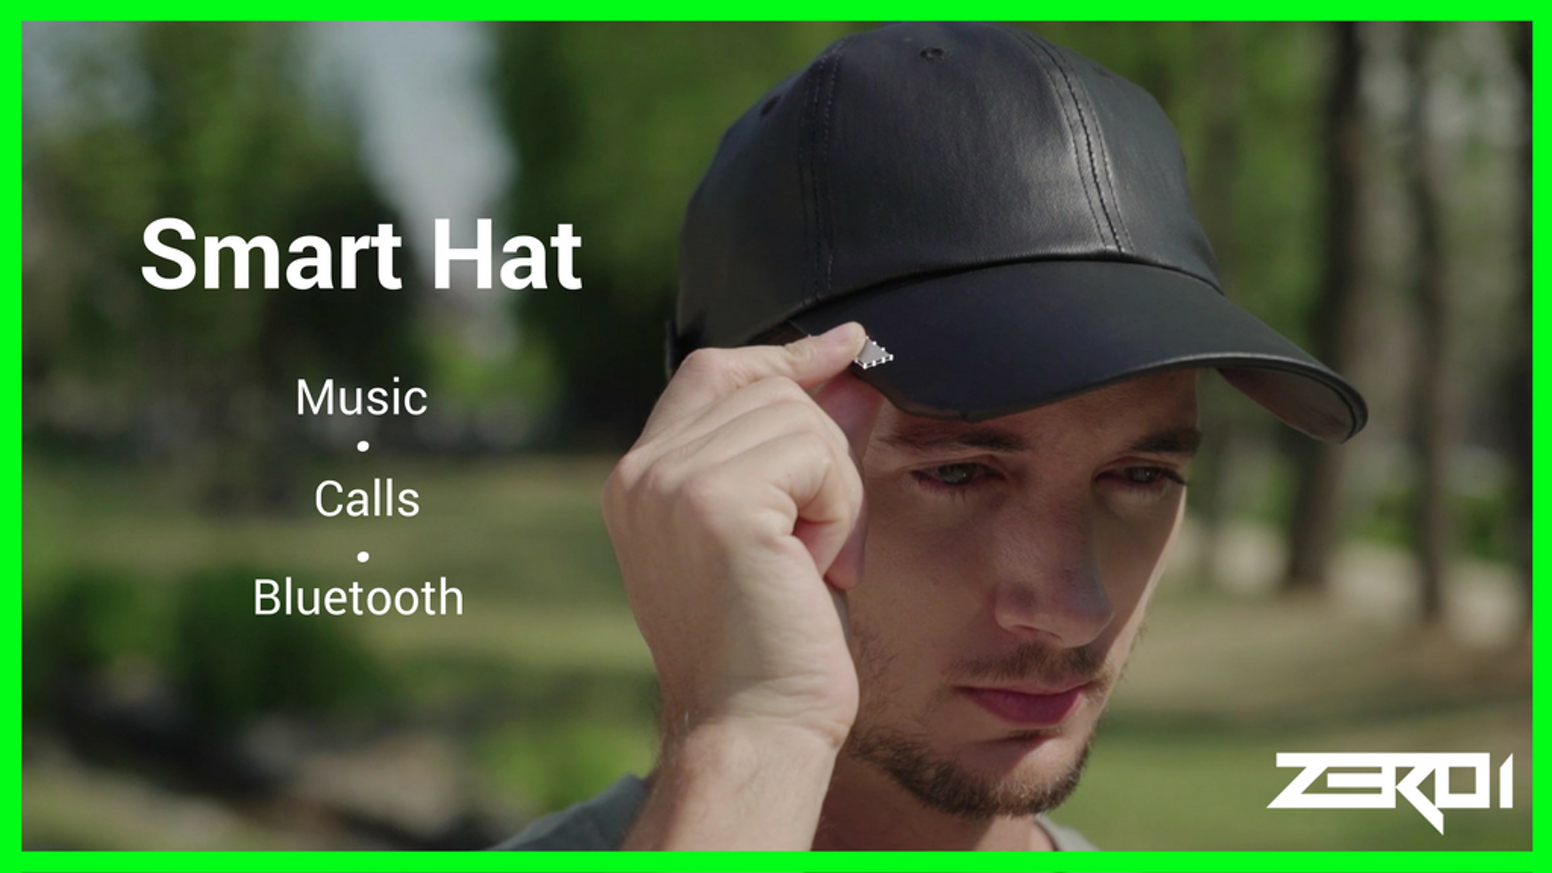 ZEROi is not your ordinary hat. It uses bone conduction technologyand allows you listen to music without earphones.